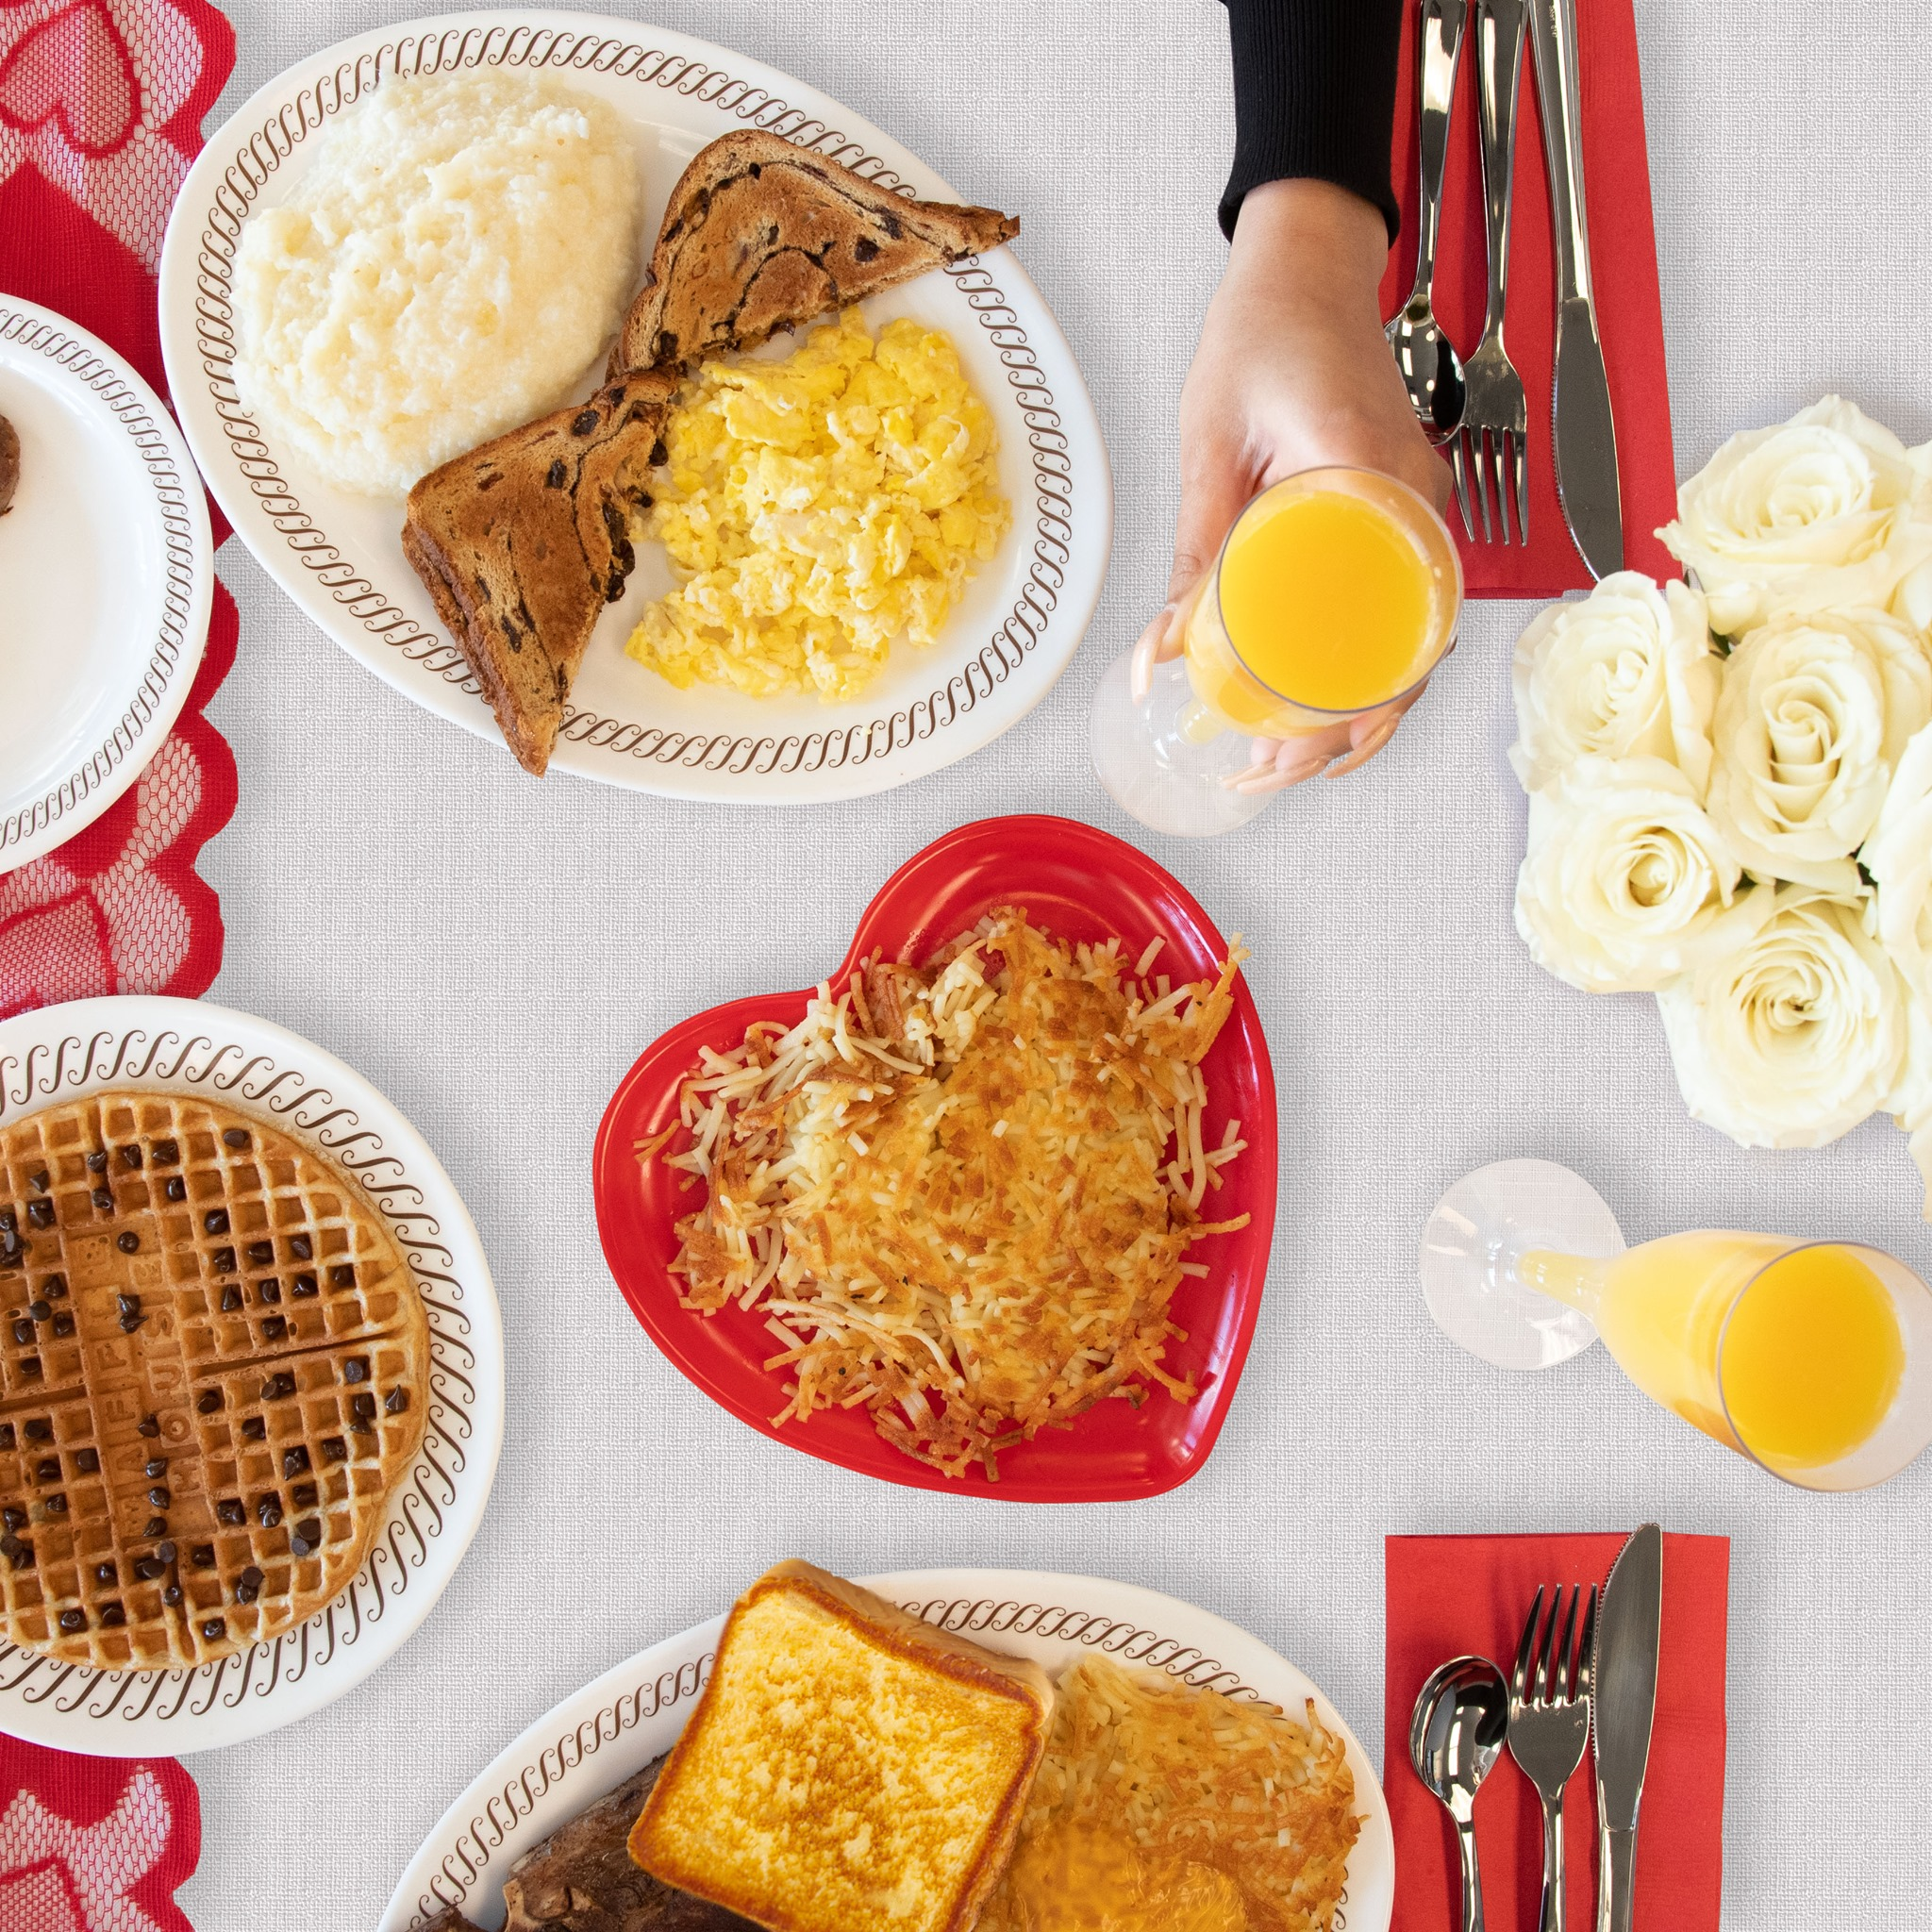 A breakfast spread with heart shaped hashbrowns, toast, eggs, white roses, and waffles for Valentine's Day at Waffle House